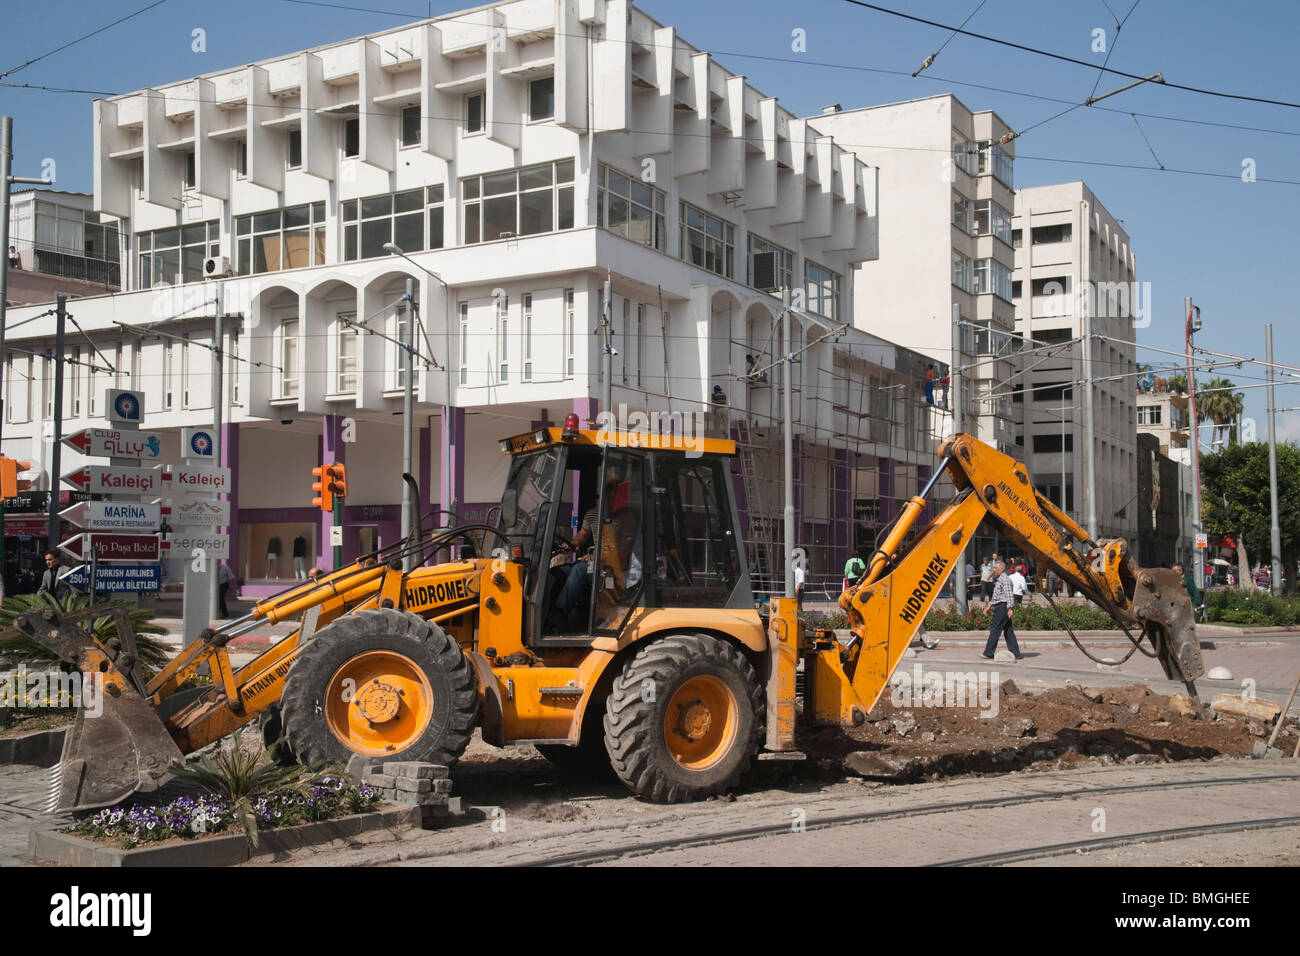 Turkey Antalya - the modern city - road construction work in the centre - Stock Image